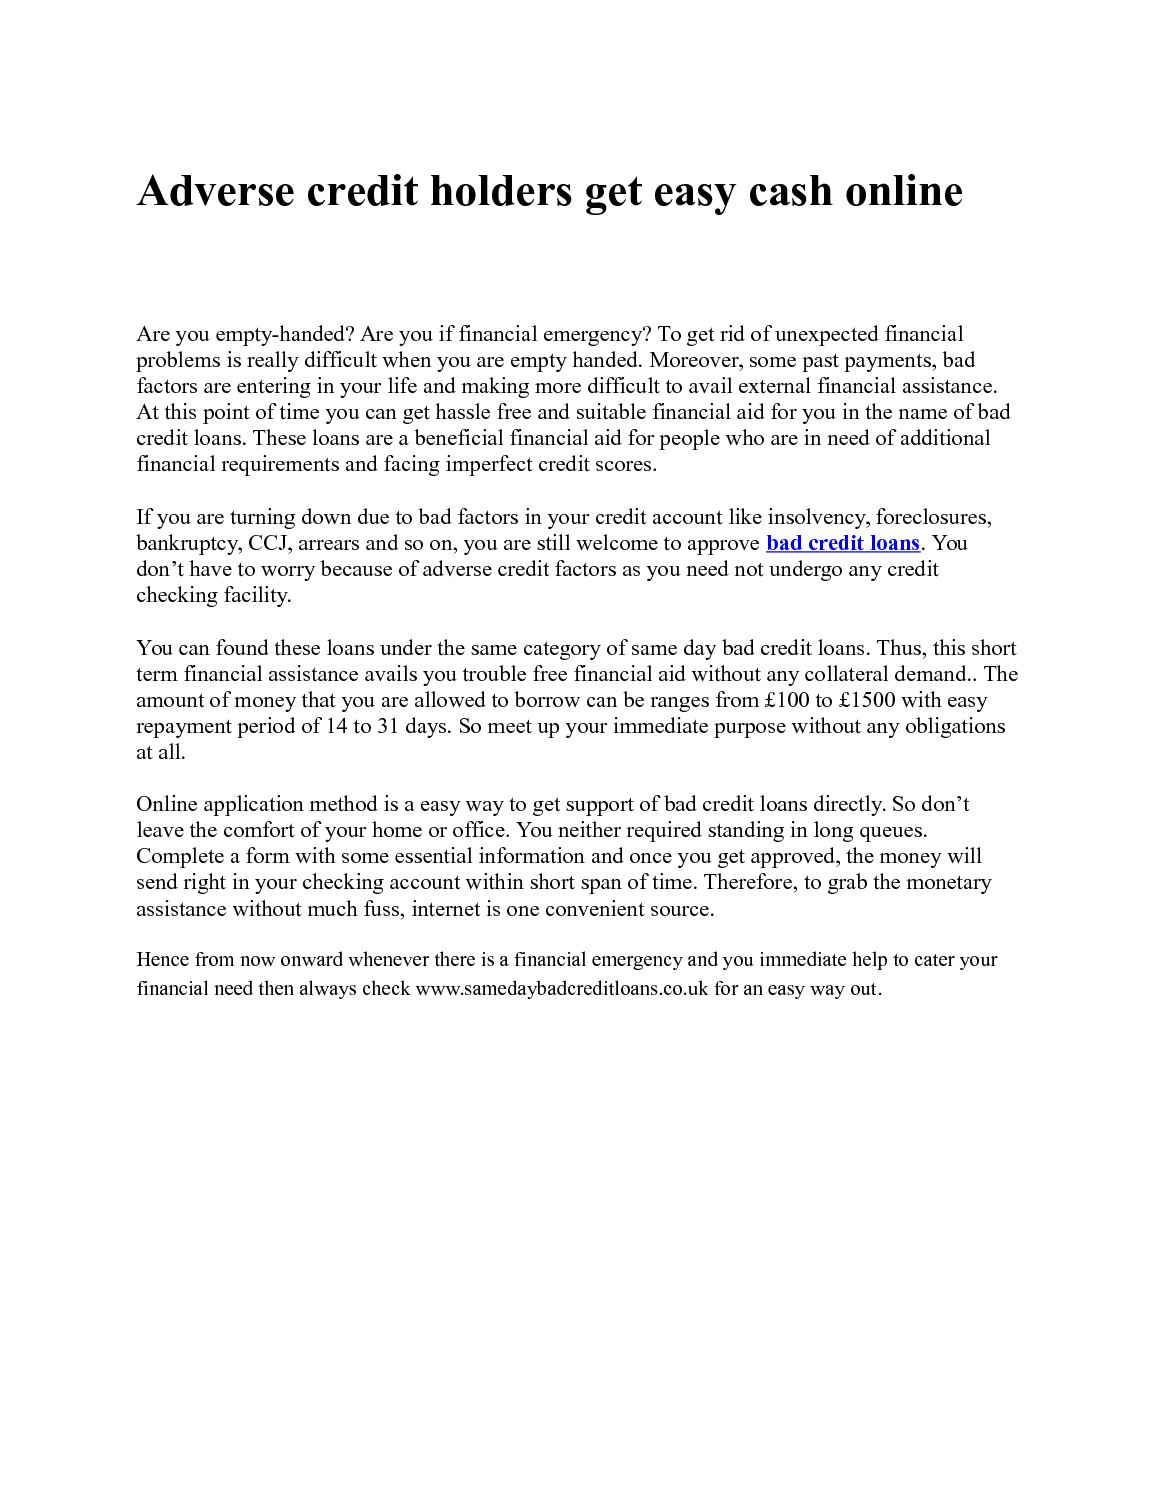 calaméo - adverse credit holders get easy cash online